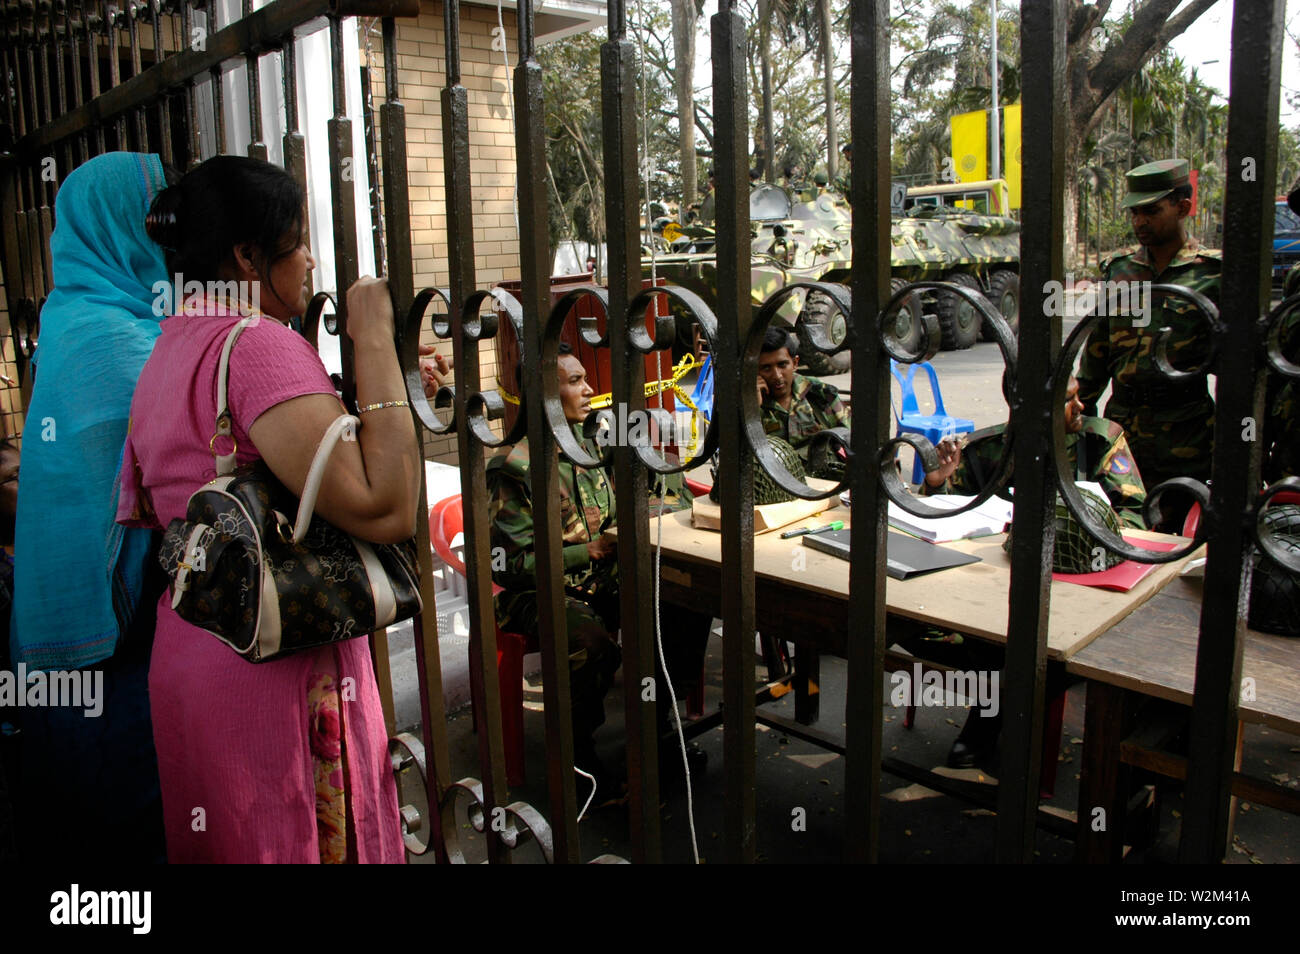 As the rebel BDR soldiers surrendered yesterday evening, the relatives and families of the lost army officers gathered at the gate of BDR Headquarters to know the fate of their loved ones. Pilkhana, Dhaka, Bangladesh. February 27, 2009. A mutiny by Bangladesh Rifles, BDR, soldiers broke out in their Headquarter in Pilkhana, in the morning of 25th February, 2009, making the area into almost a war zone. Several thousand shots were fired from machineguns, killing around 60 army officers, at the BDR Pilkhana Headquarters and several civilians near the area. - Stock Image